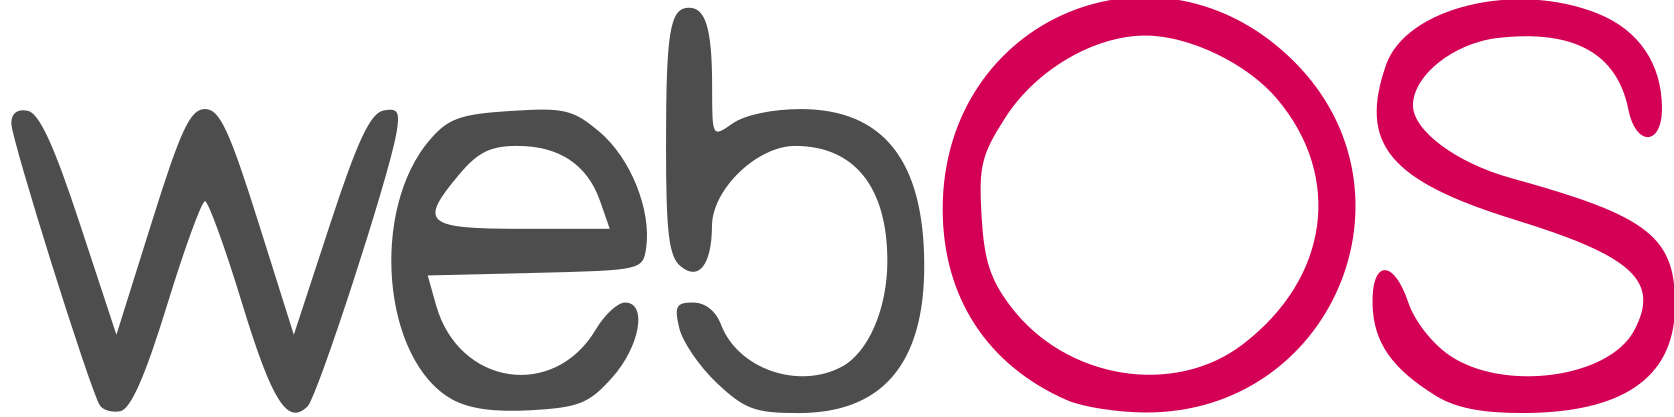 WebOS Mobile Operating System Logo